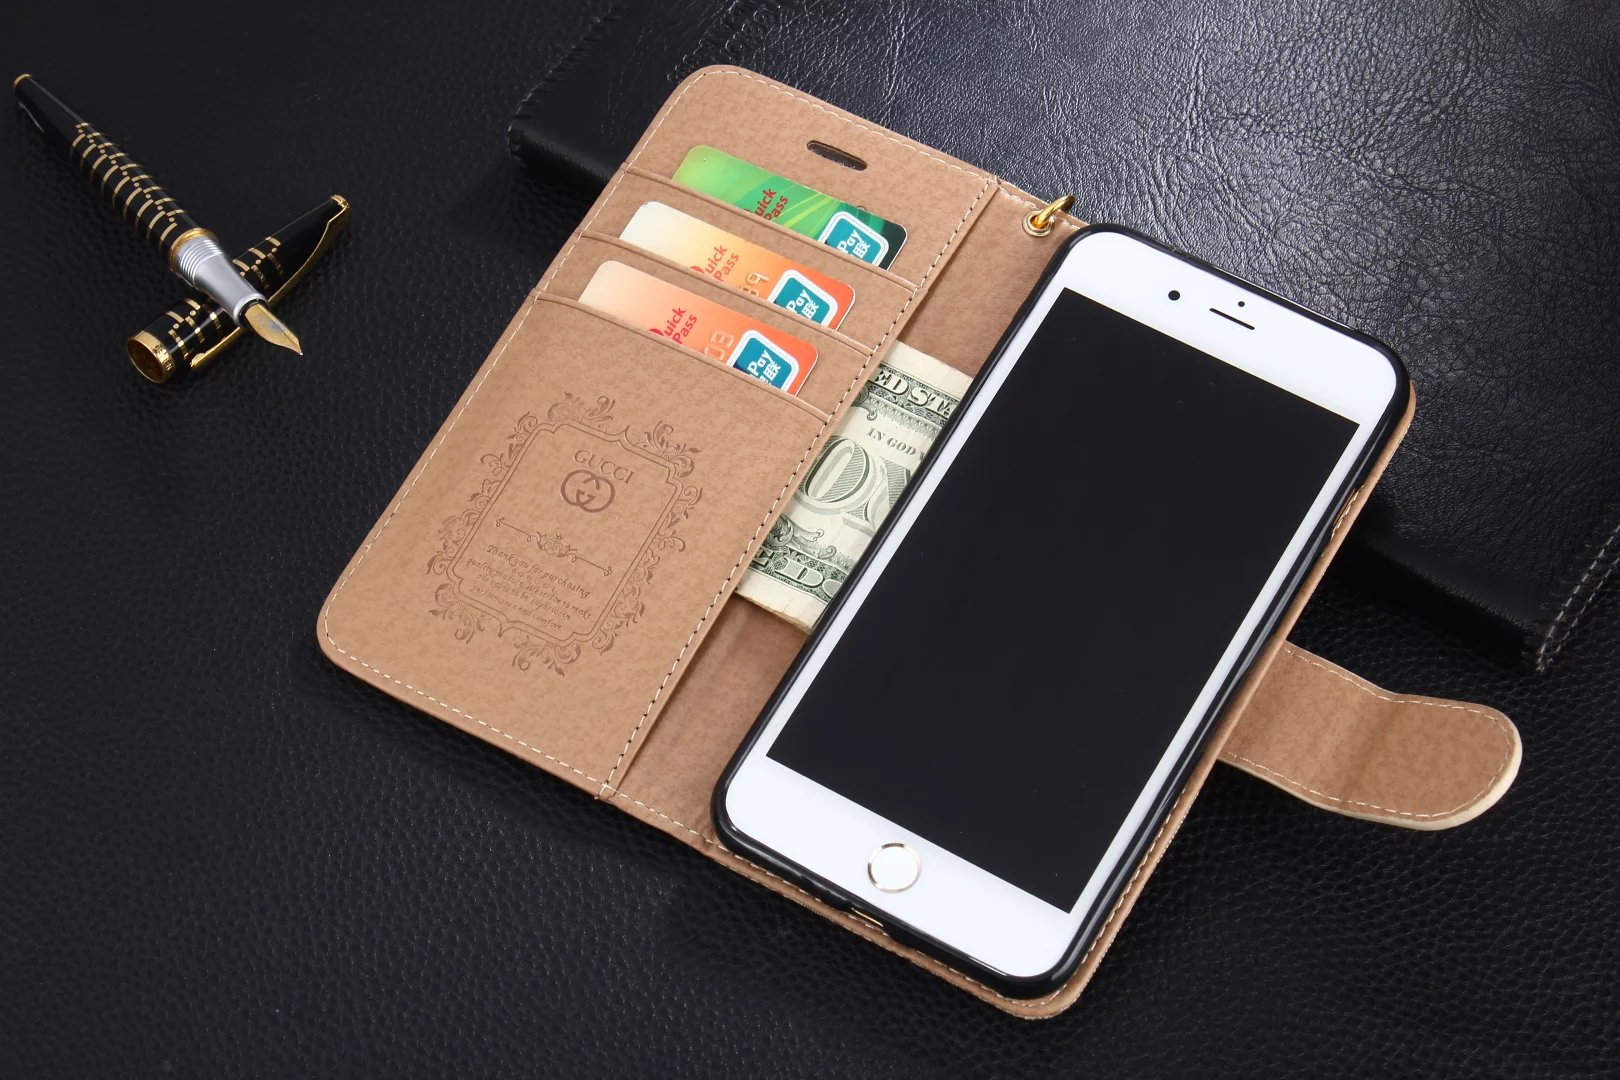 cover of iphone 6s iphone 6s cases for sale fashion iphone6s case 11 iphone case iphone skin cover cool cell phone cases iphone 6s sticker case iphone 6s designer wallet case iphone 6s phone cover